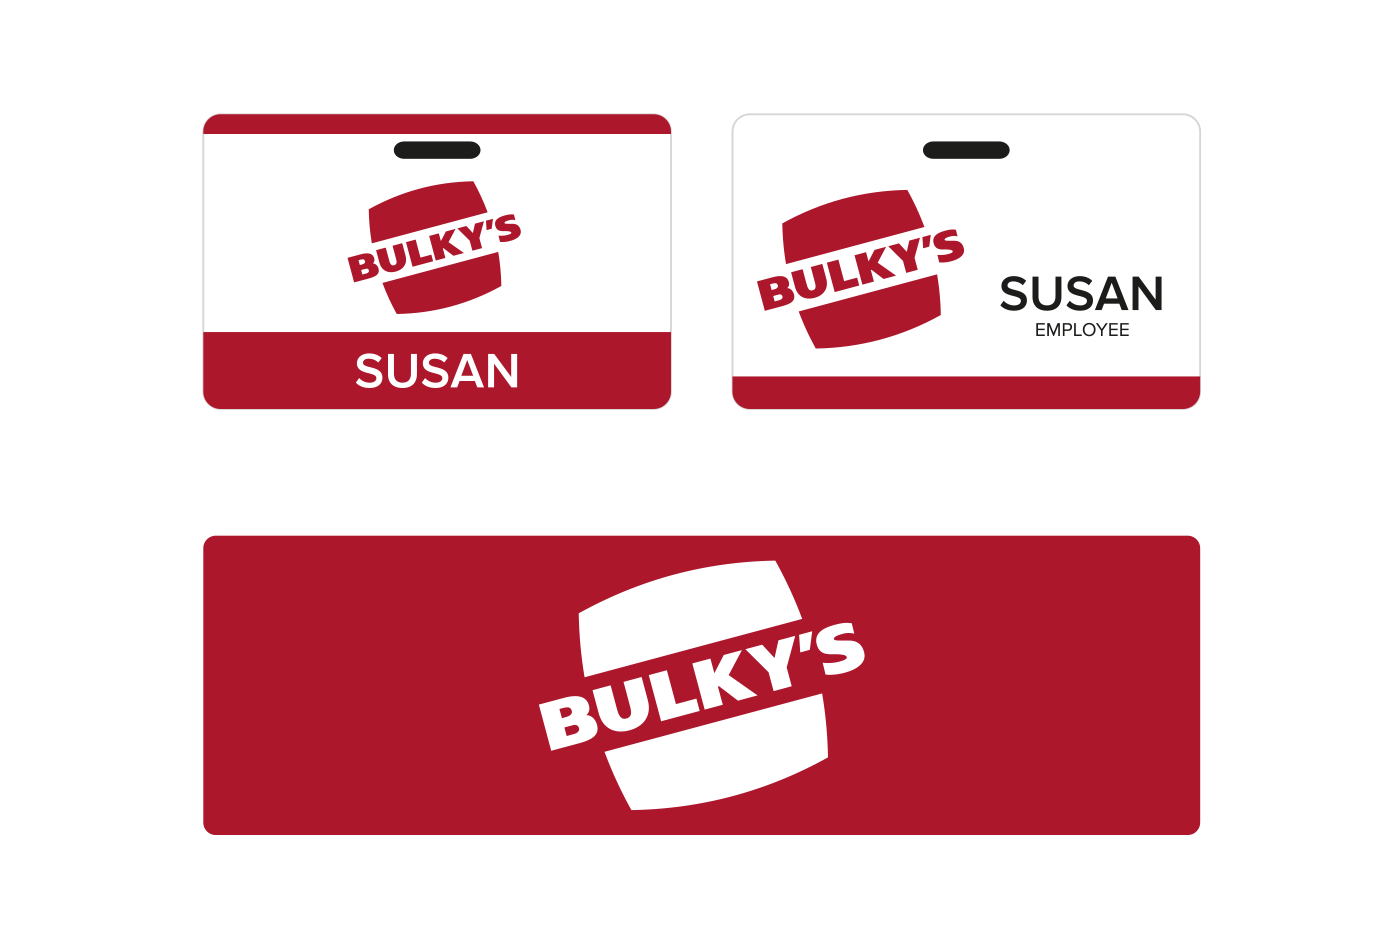 bulky's badges and signs